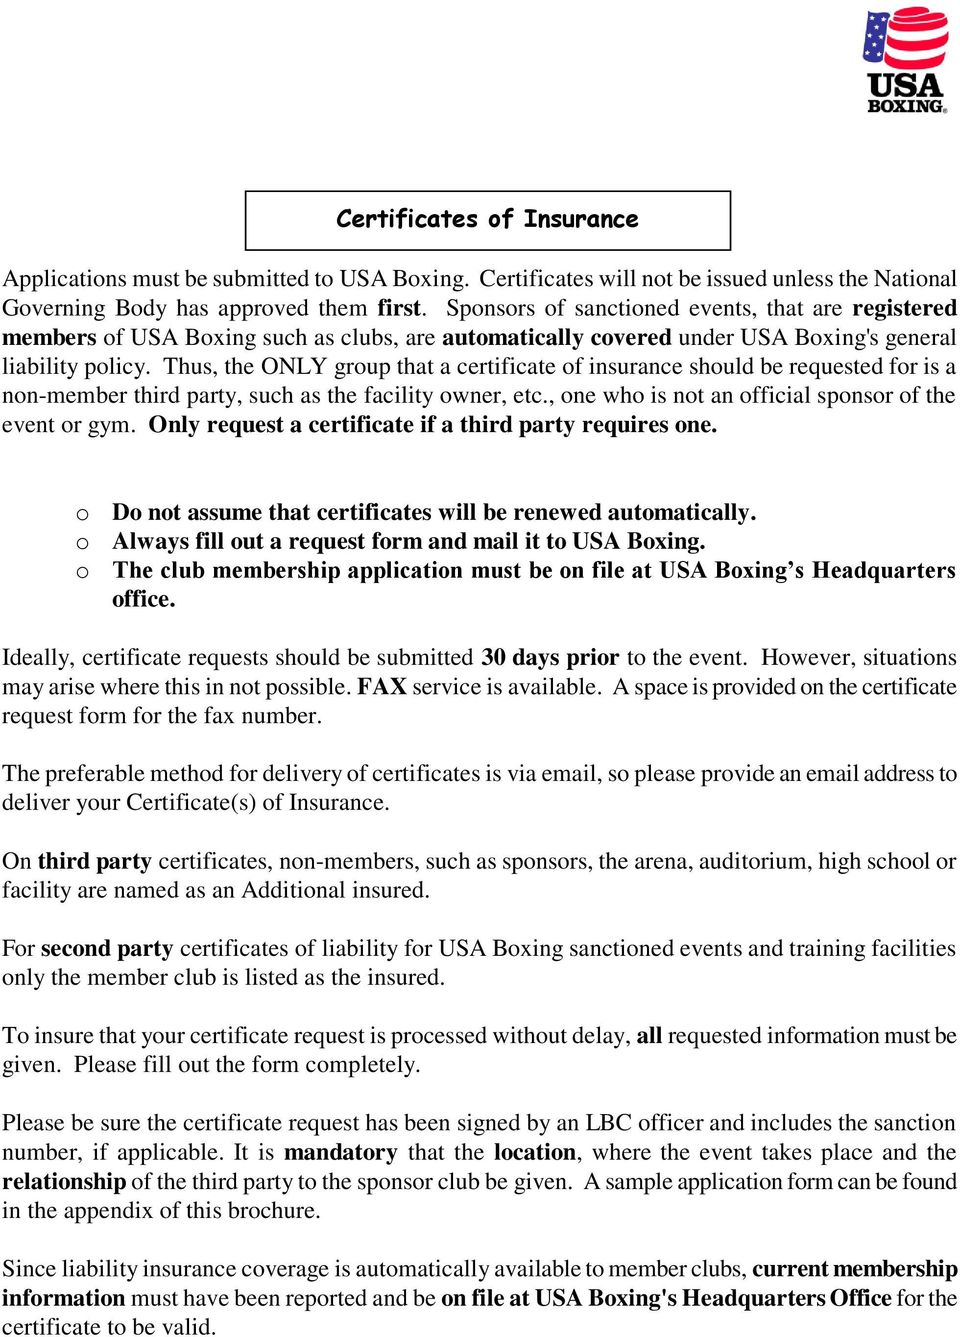 Thus, the ONLY group that a certificate of isurace should be requested for is a o-member third party, such as the facility ower, etc., oe who is ot a official sposor of the evet or gym.